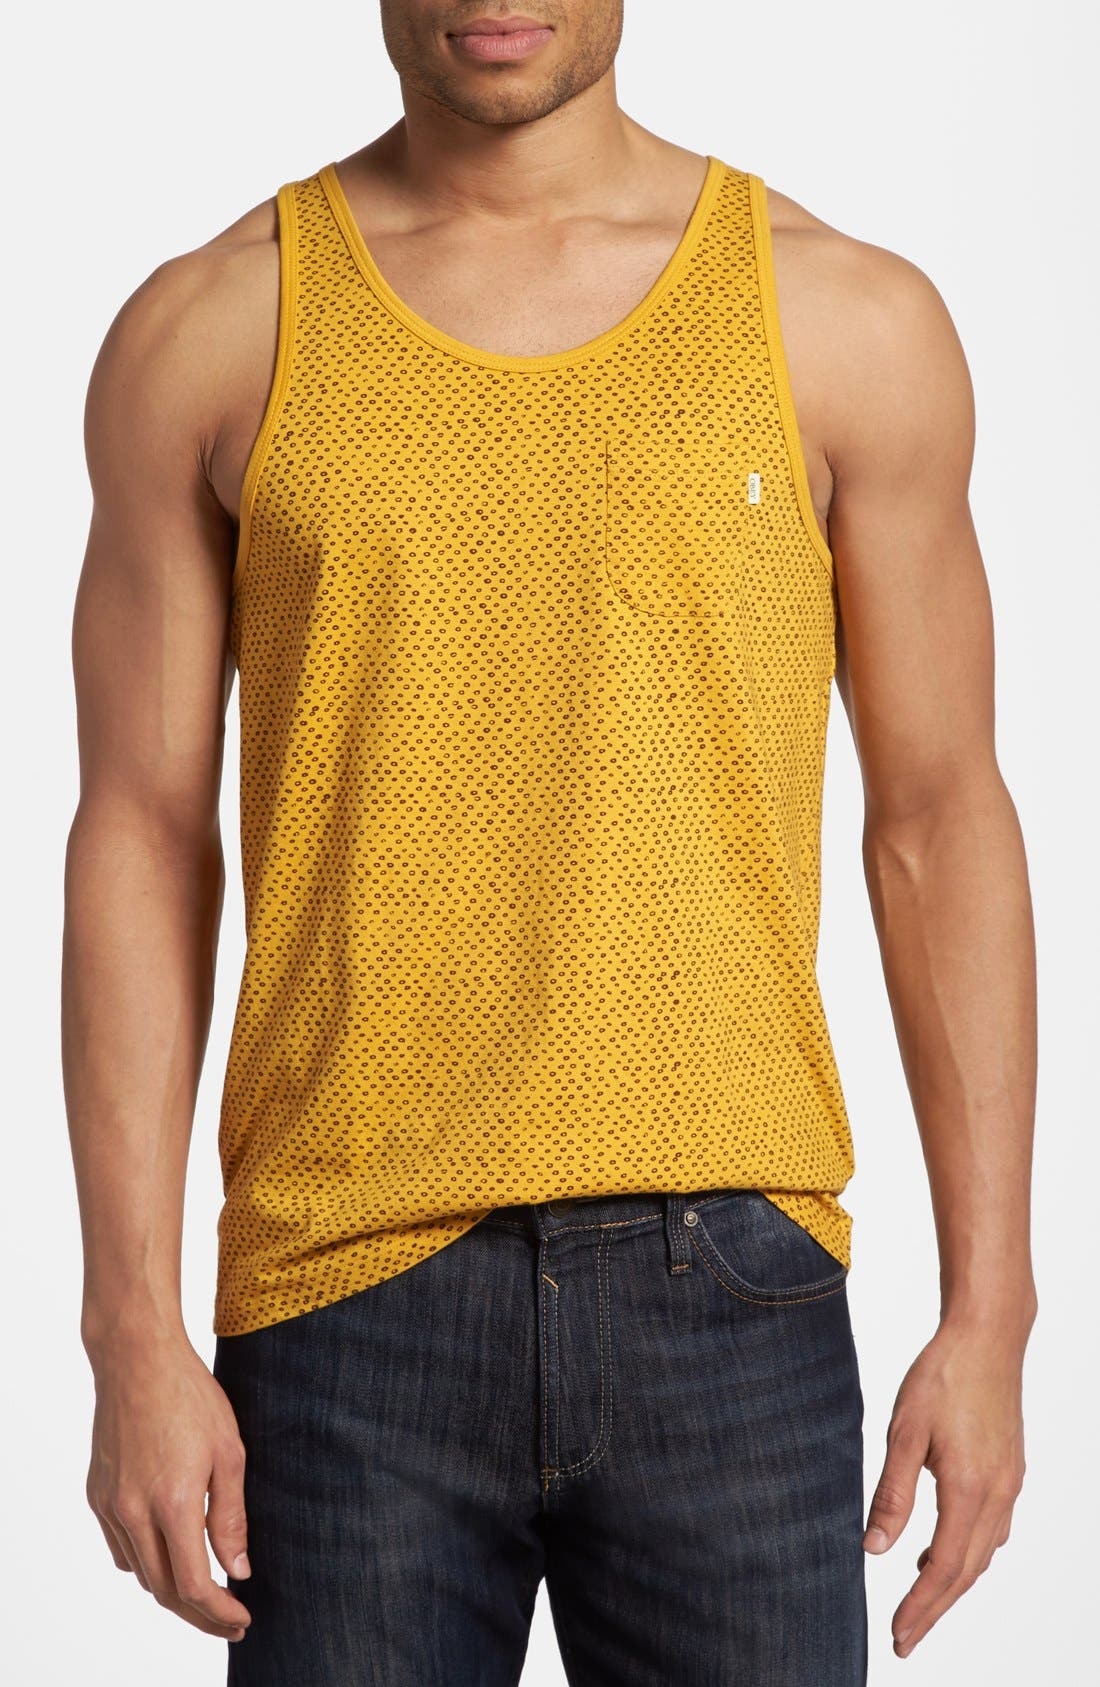 Alternate Image 1 Selected - Obey 'Dotter' Dot Print Tank Top